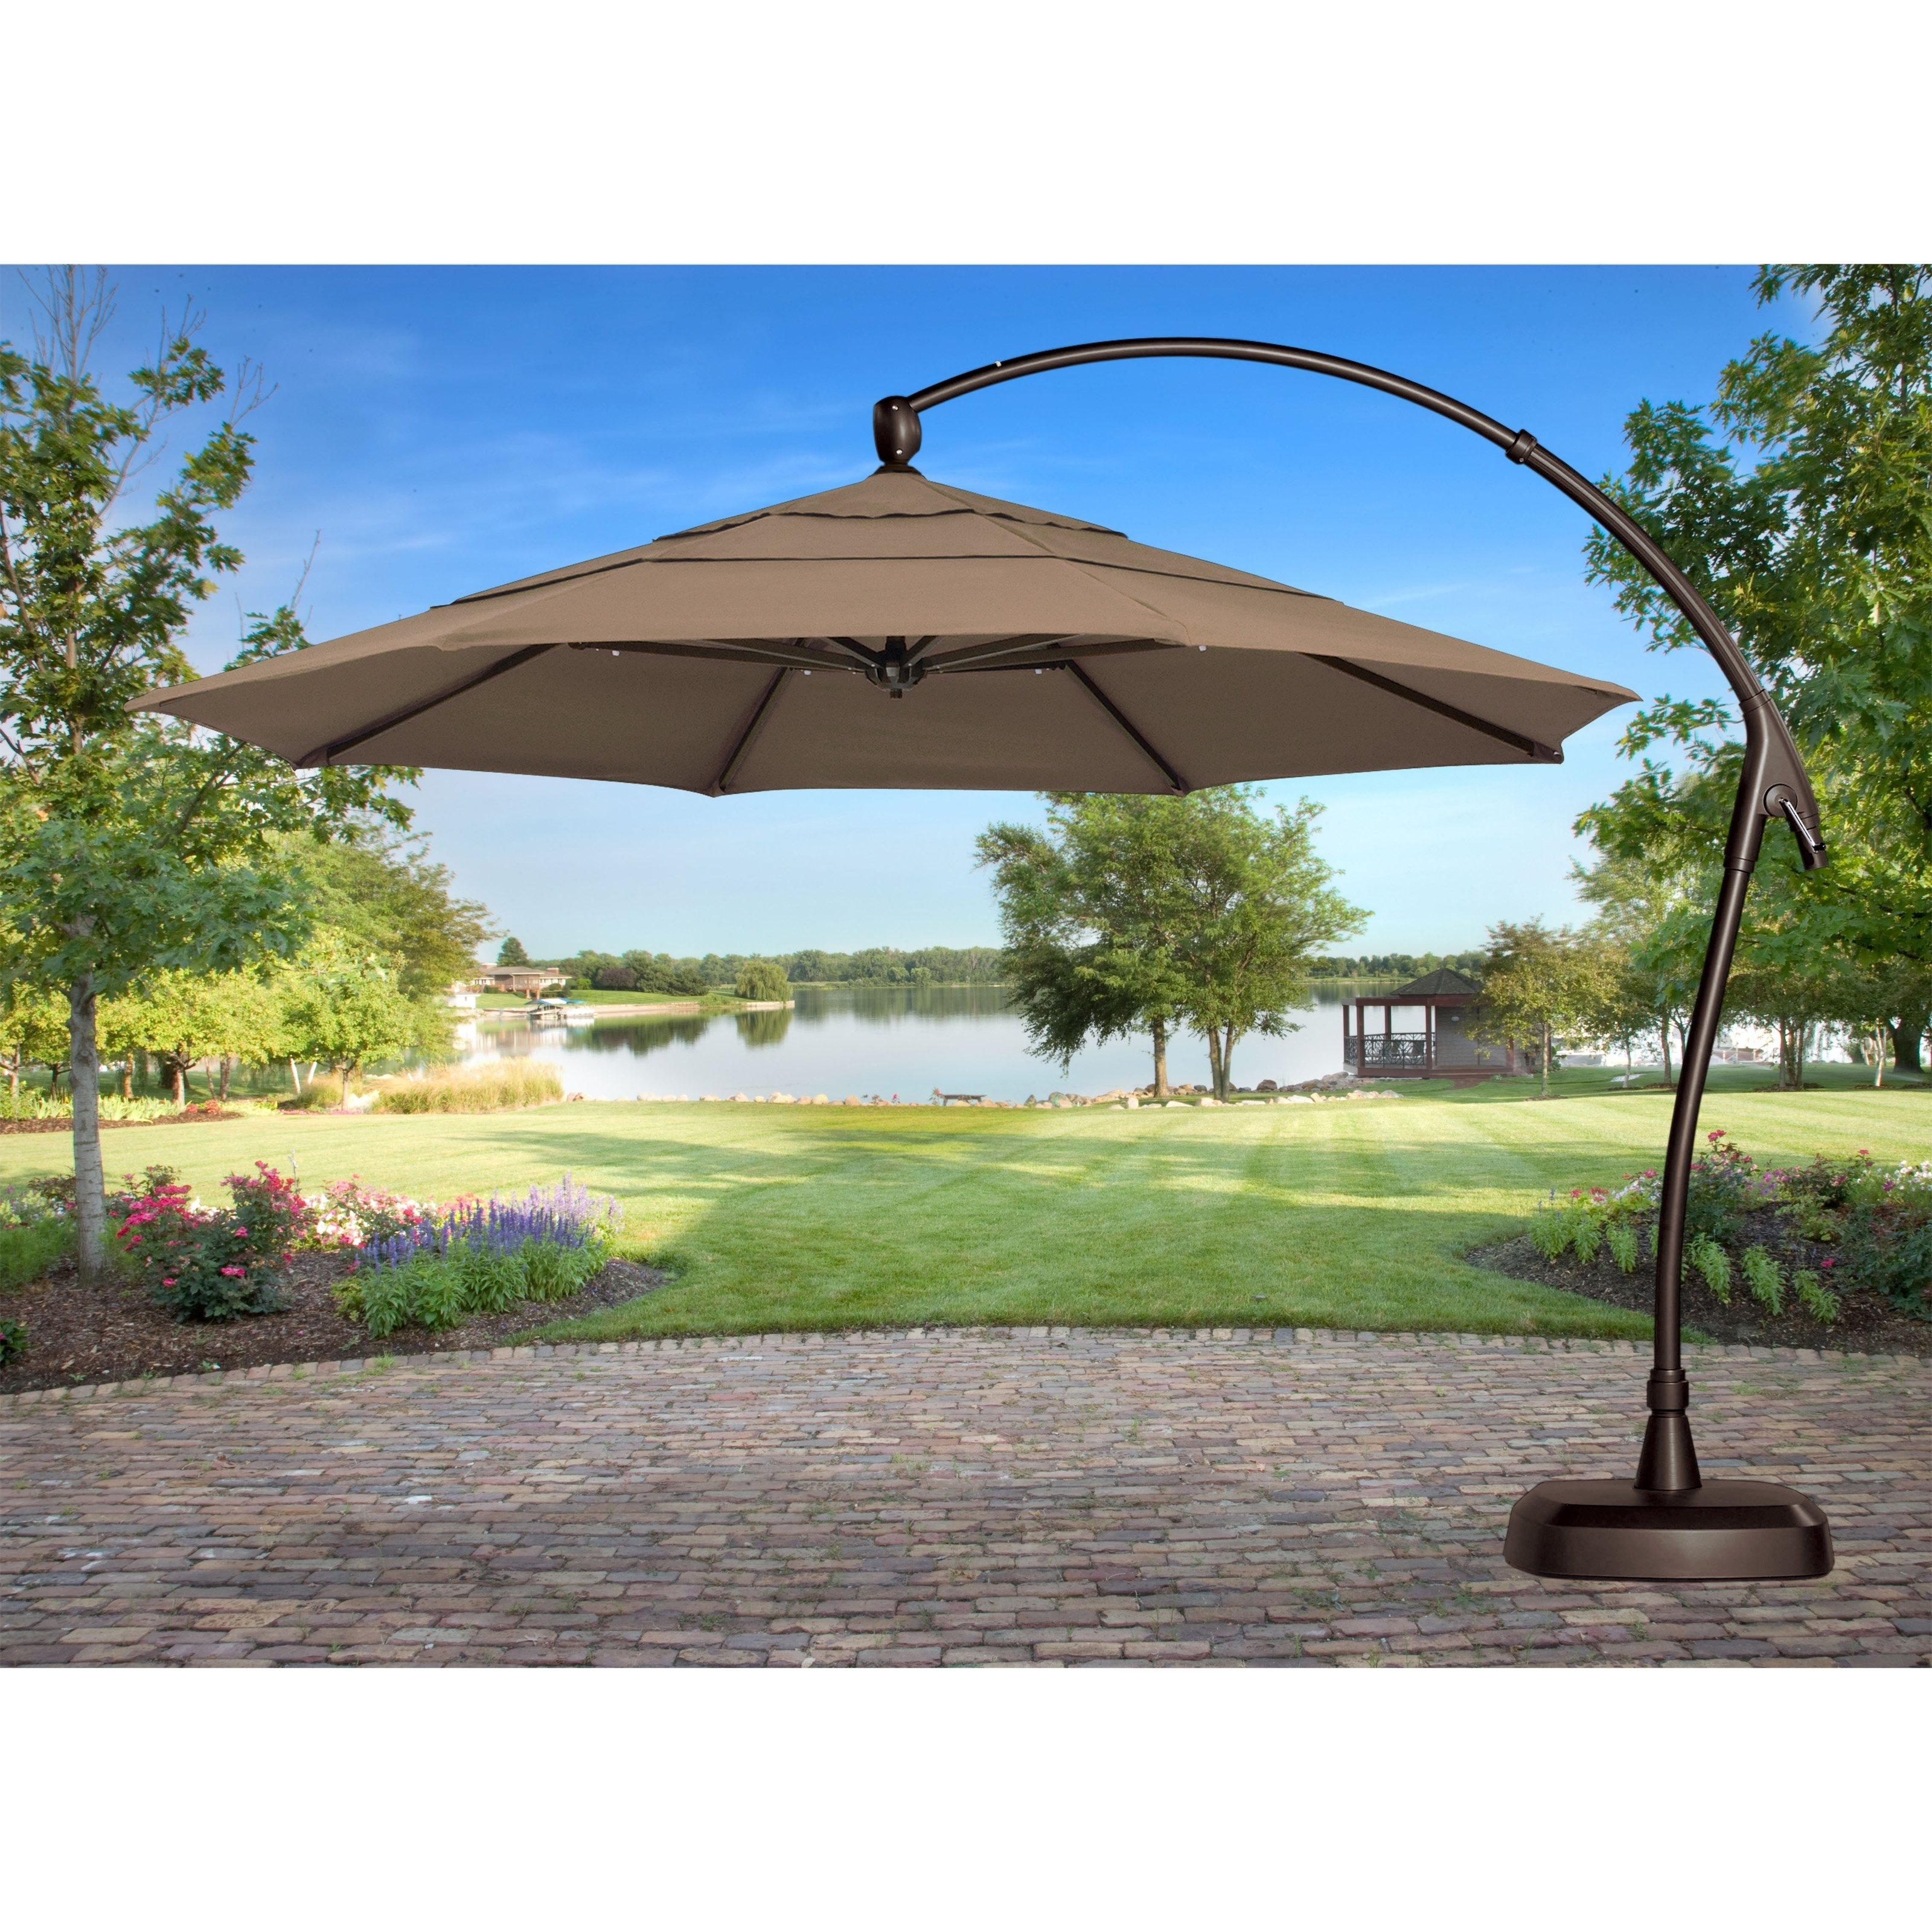 Patio Umbrellas At Home Depot Pertaining To Widely Used Cantilever Patio Umbrella Home Depot F41x About Remodel Most (View 10 of 20)